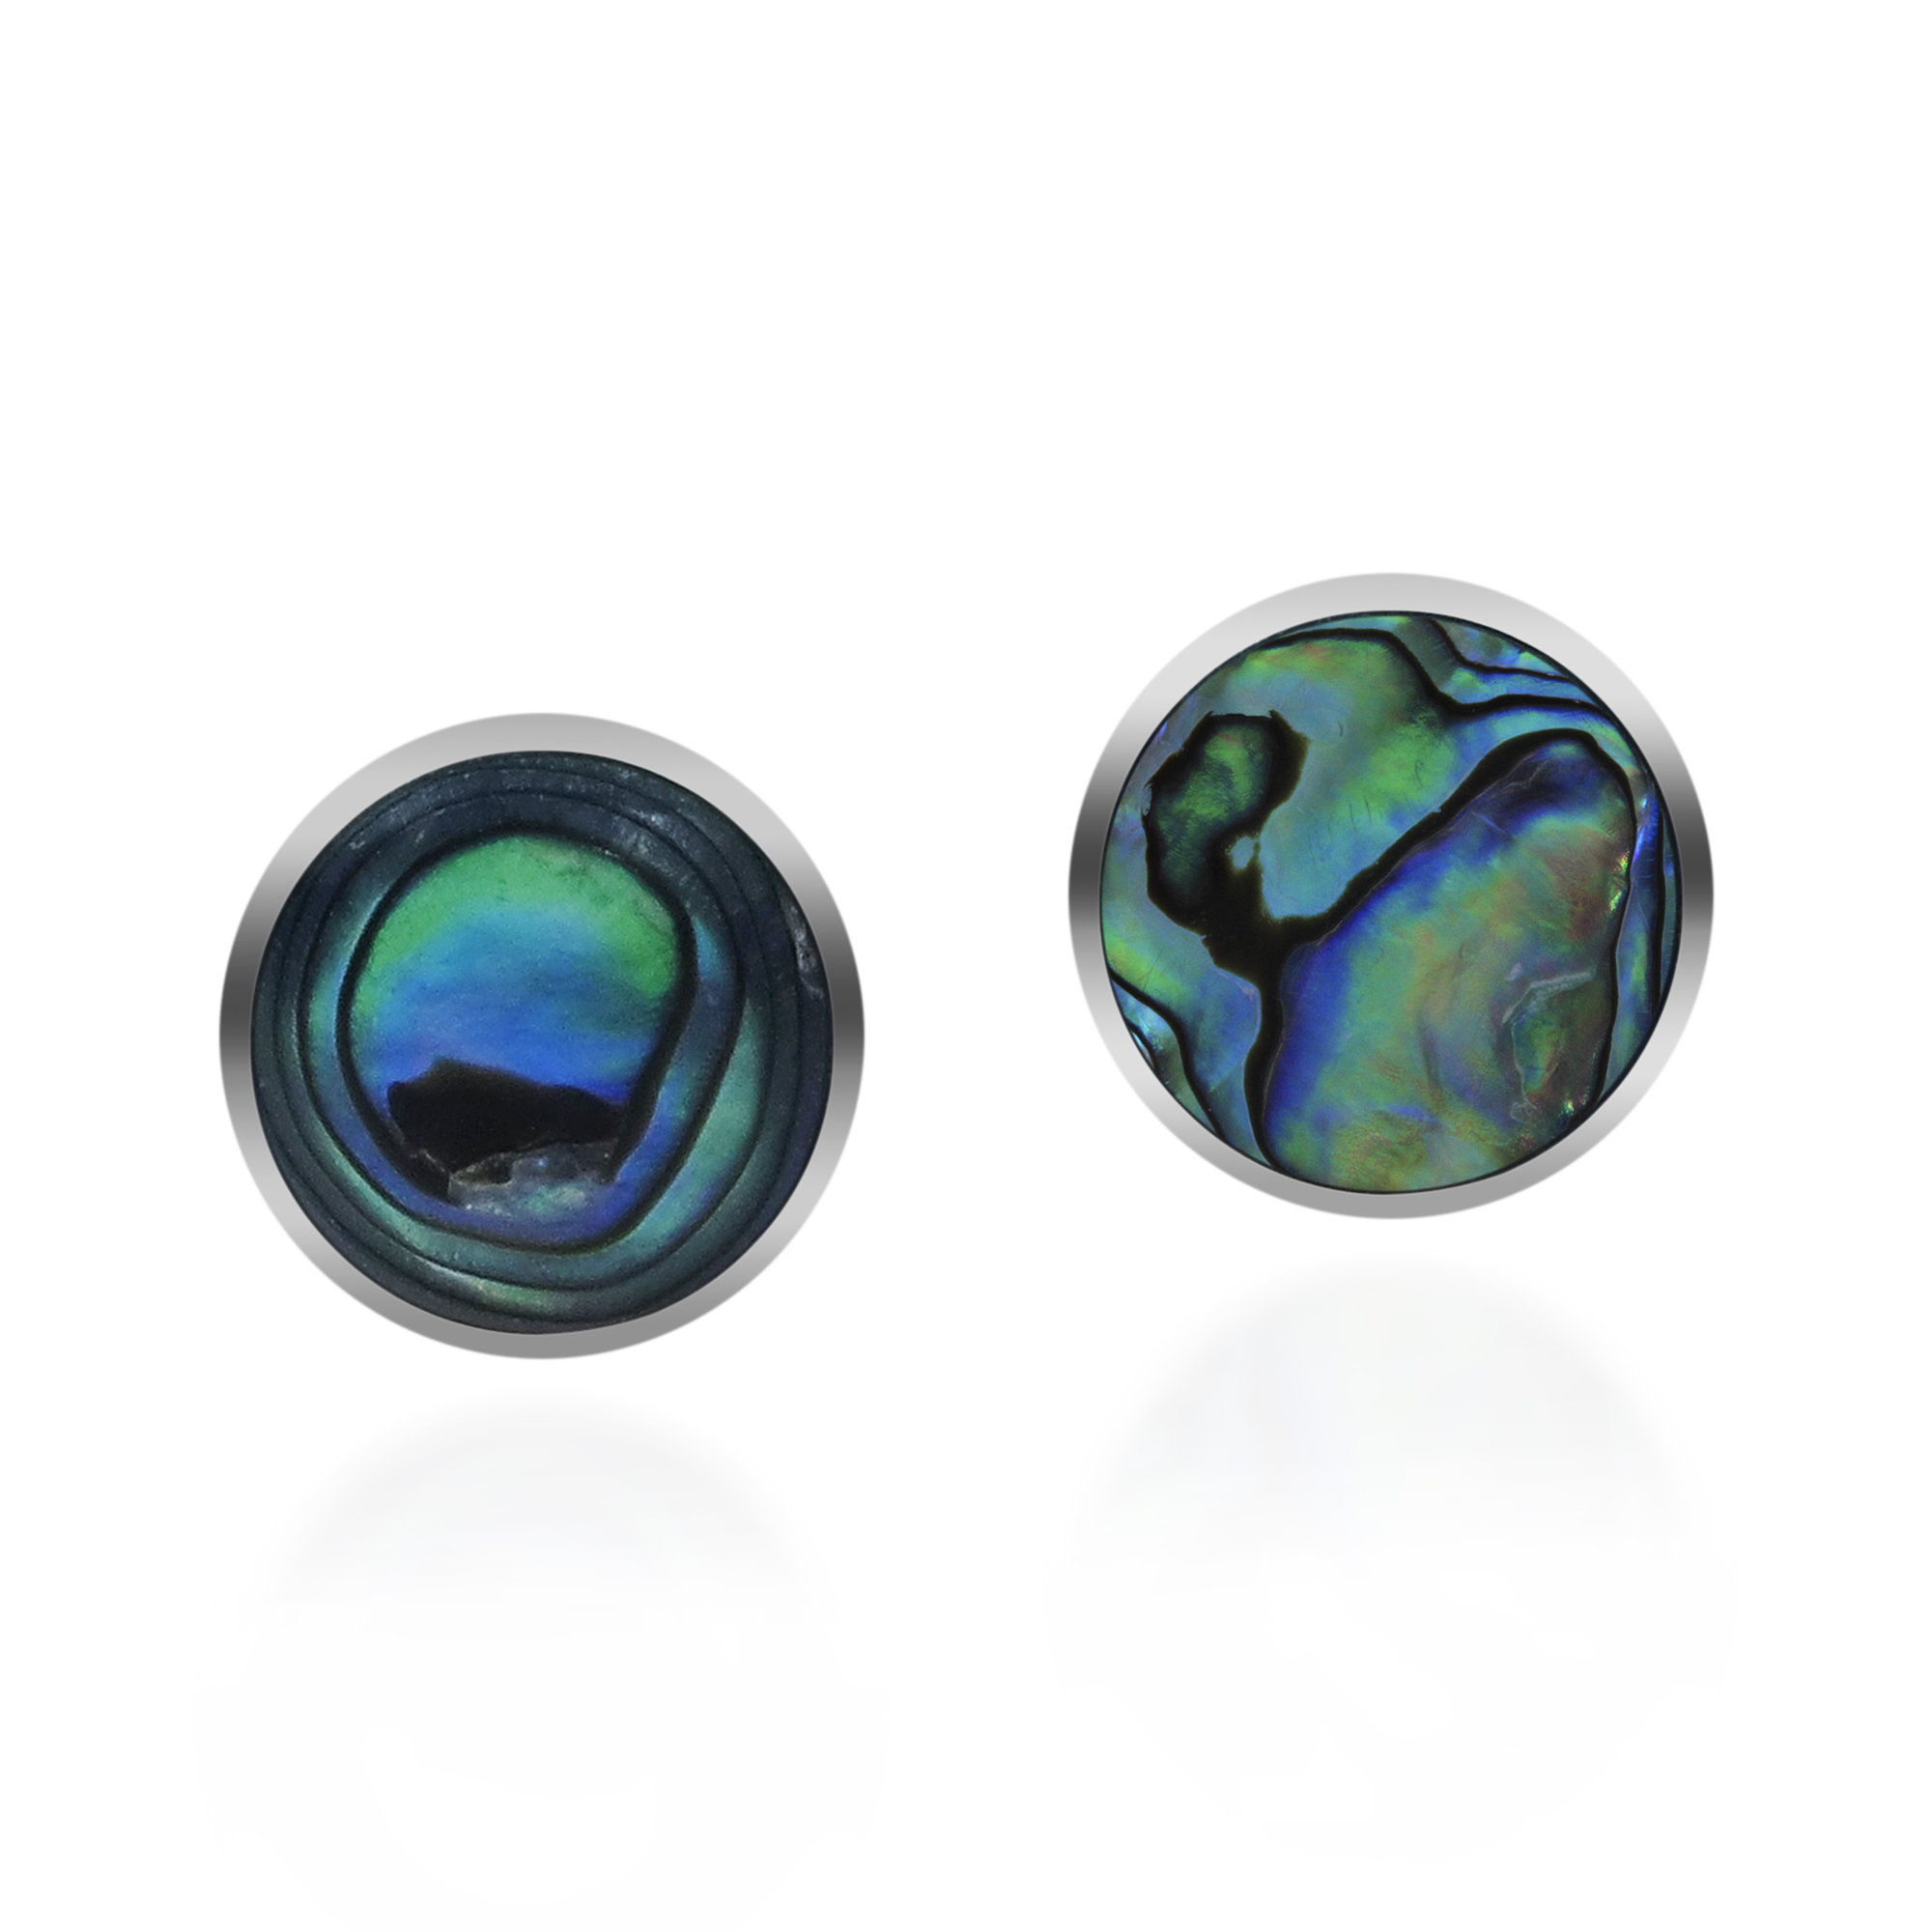 abalone amazon stud earrings turquoise com simulated seashell jewelry silver dp sterling